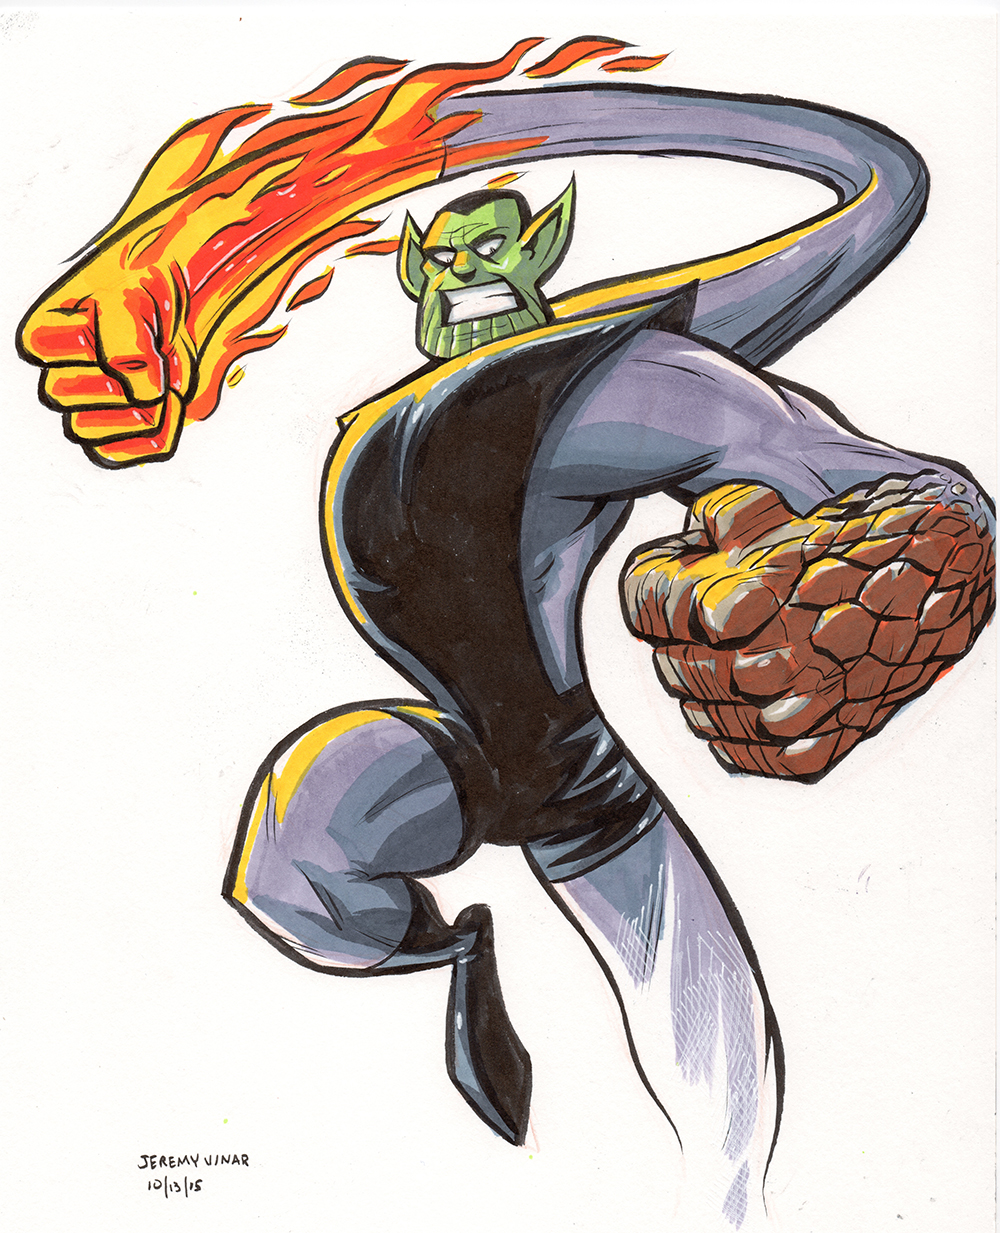 2015-10-13_SuperSkrullSmall.jpg